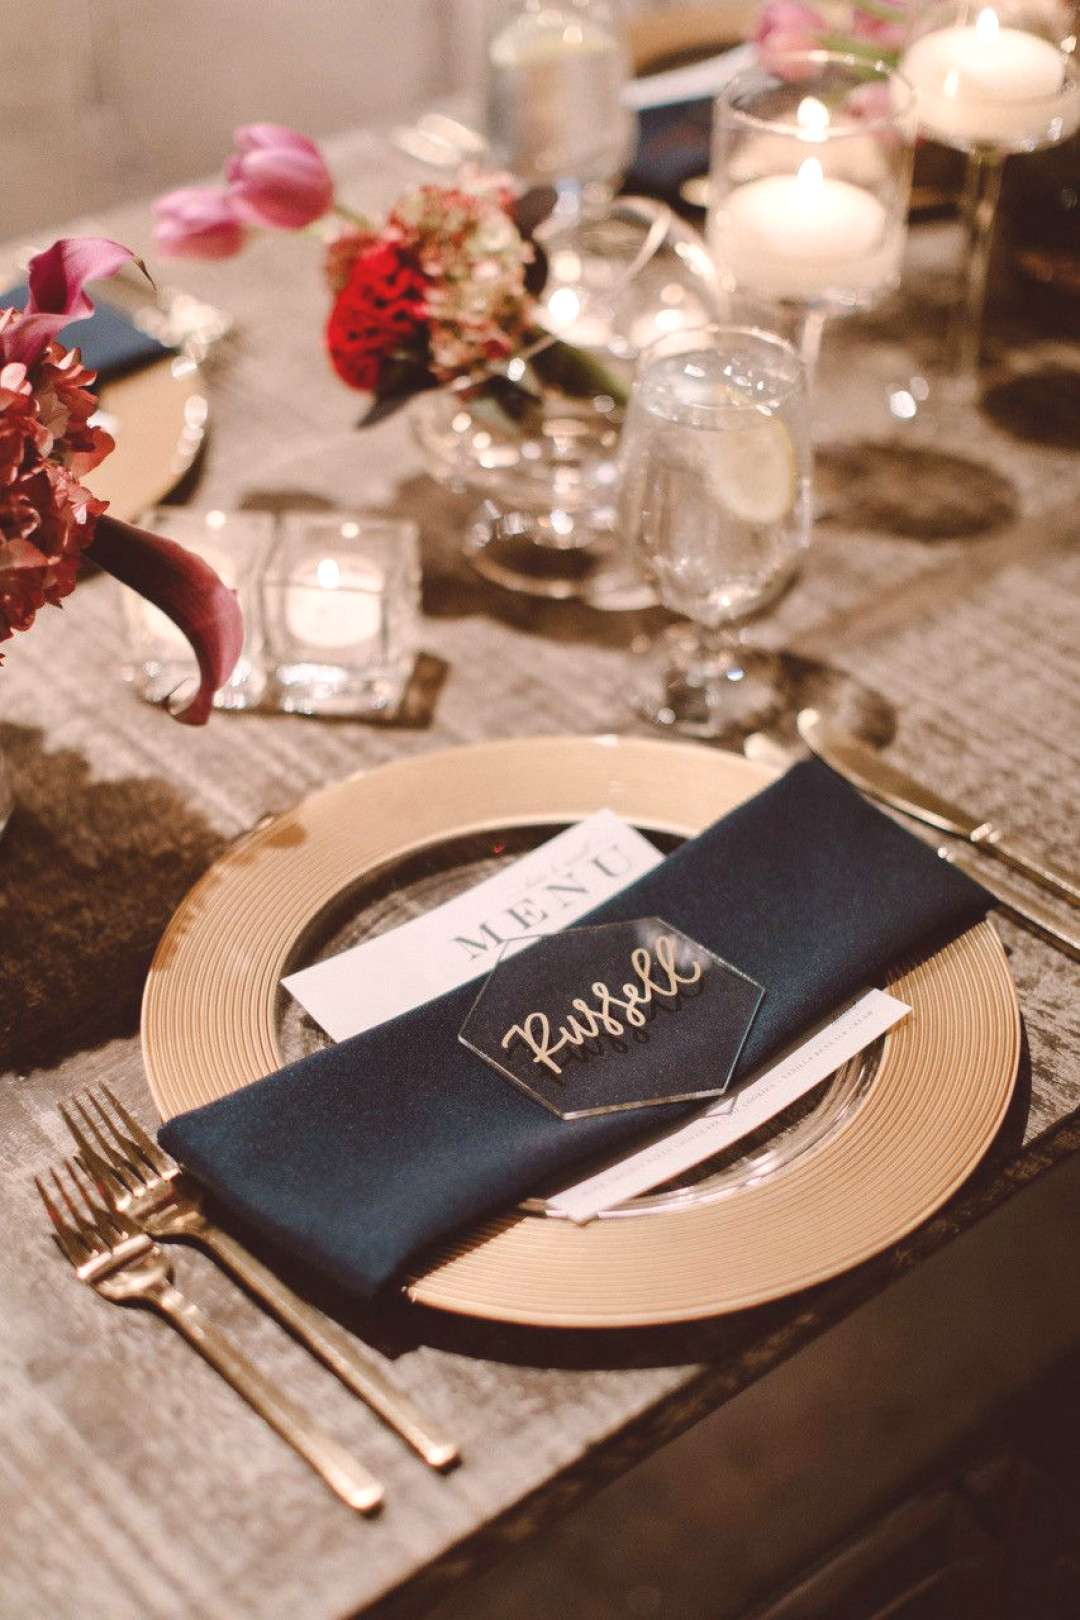 Pair your acrylic place cards with a darker napkin—an inky black linen, like the one seen here, a